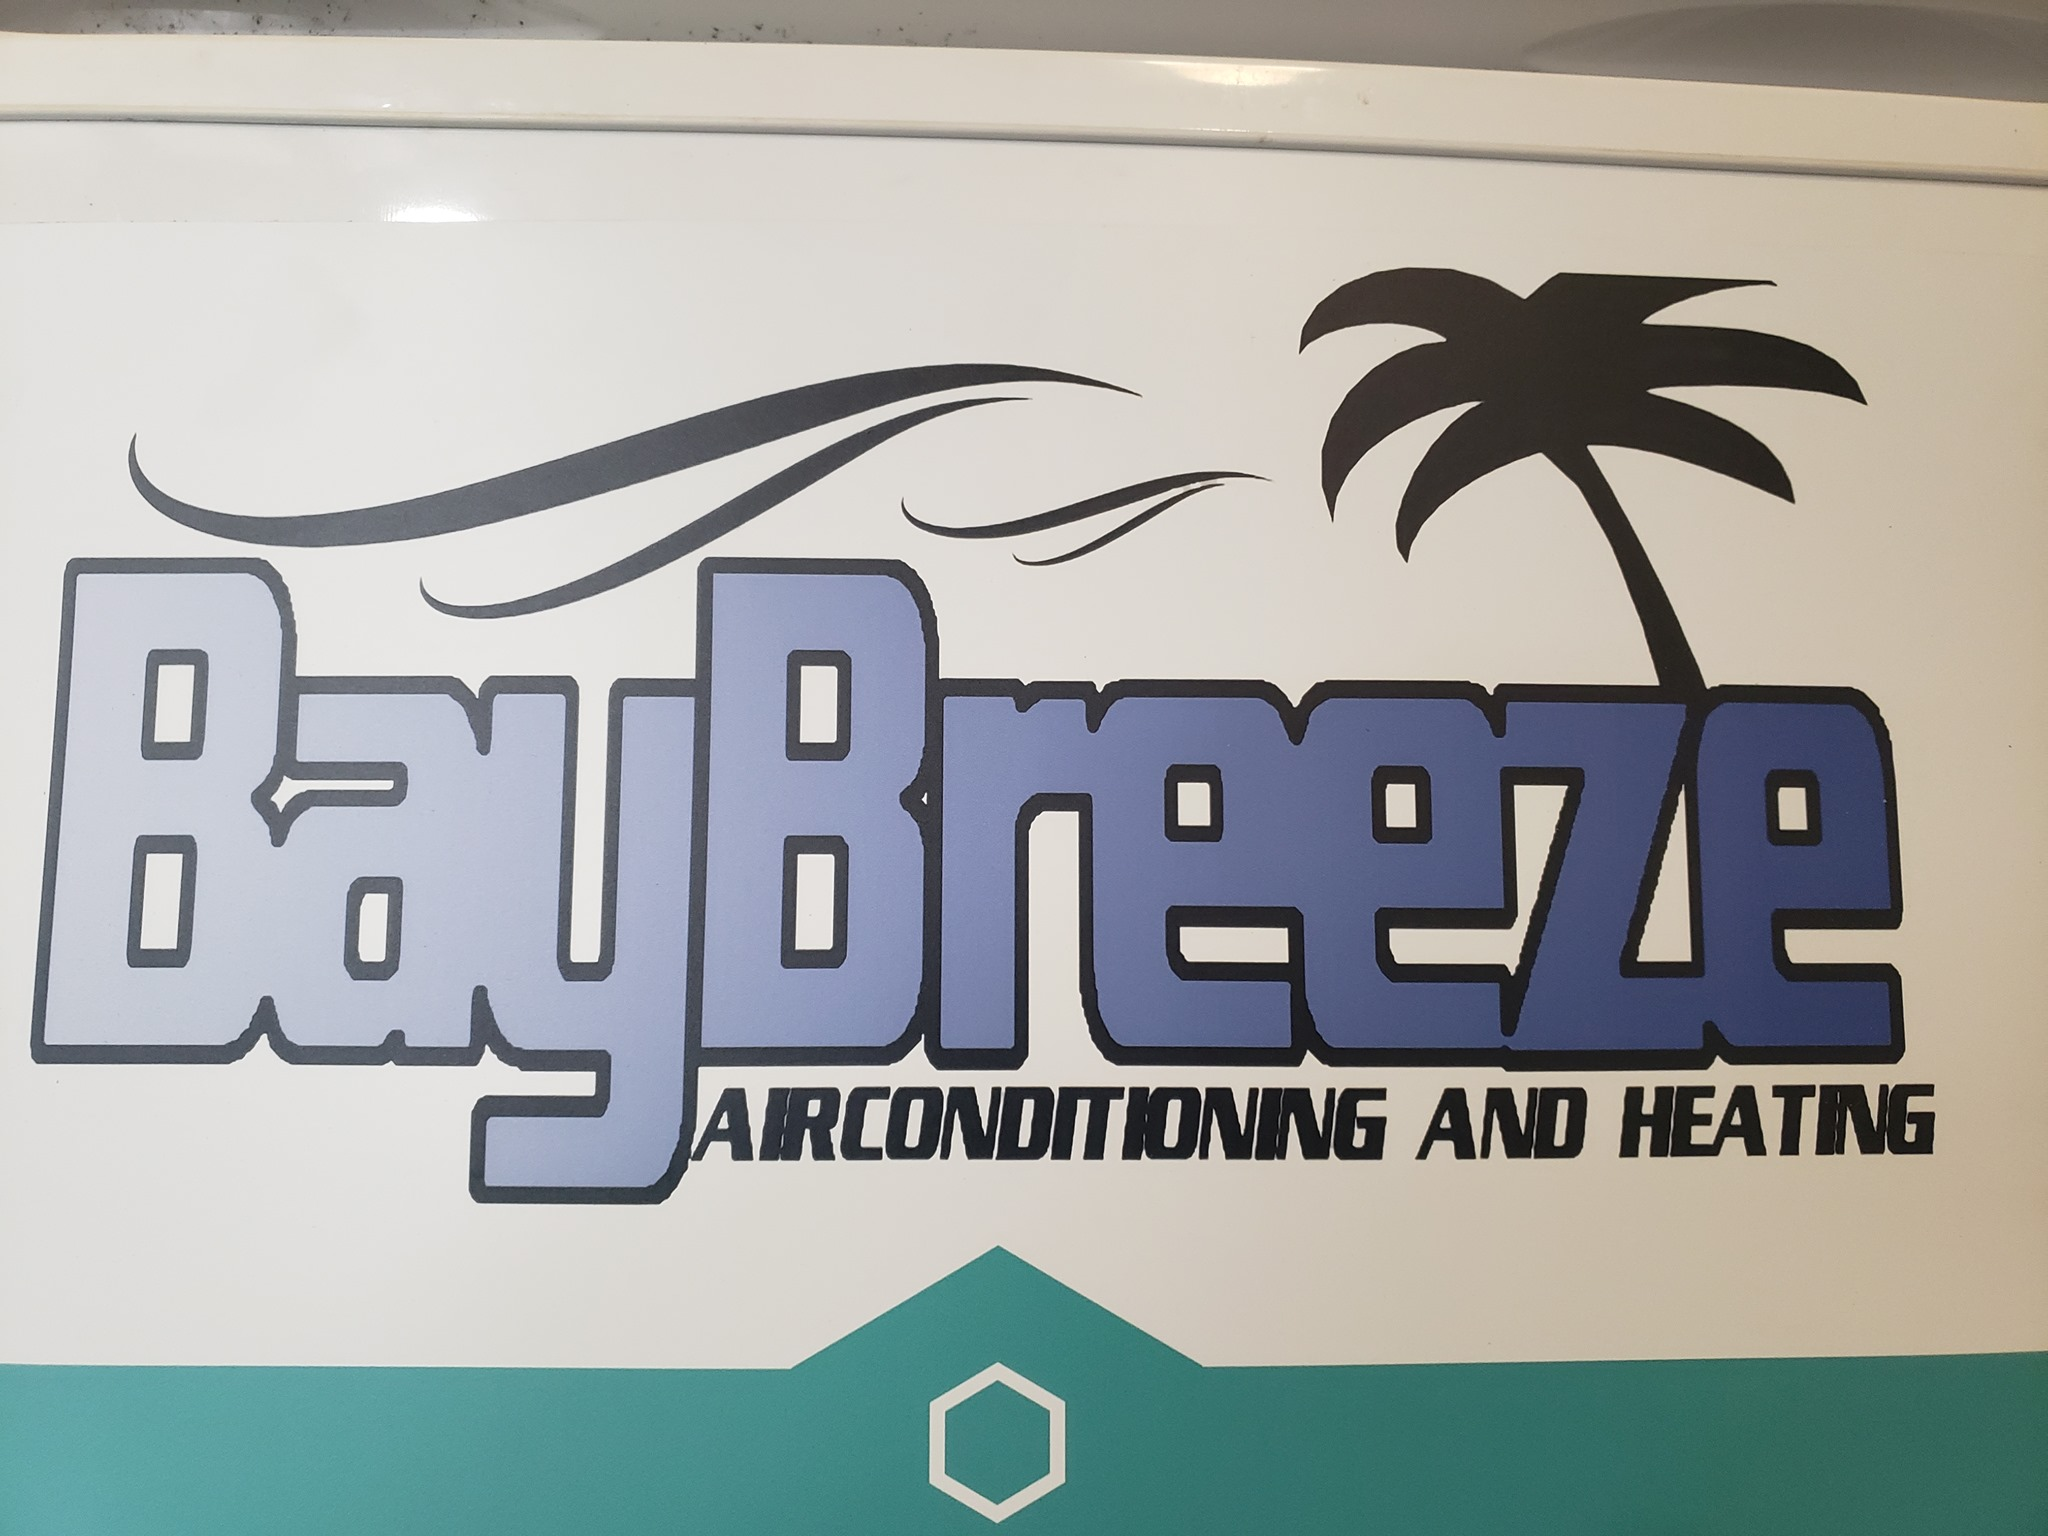 Bay-Breeze-Logo1.jpg